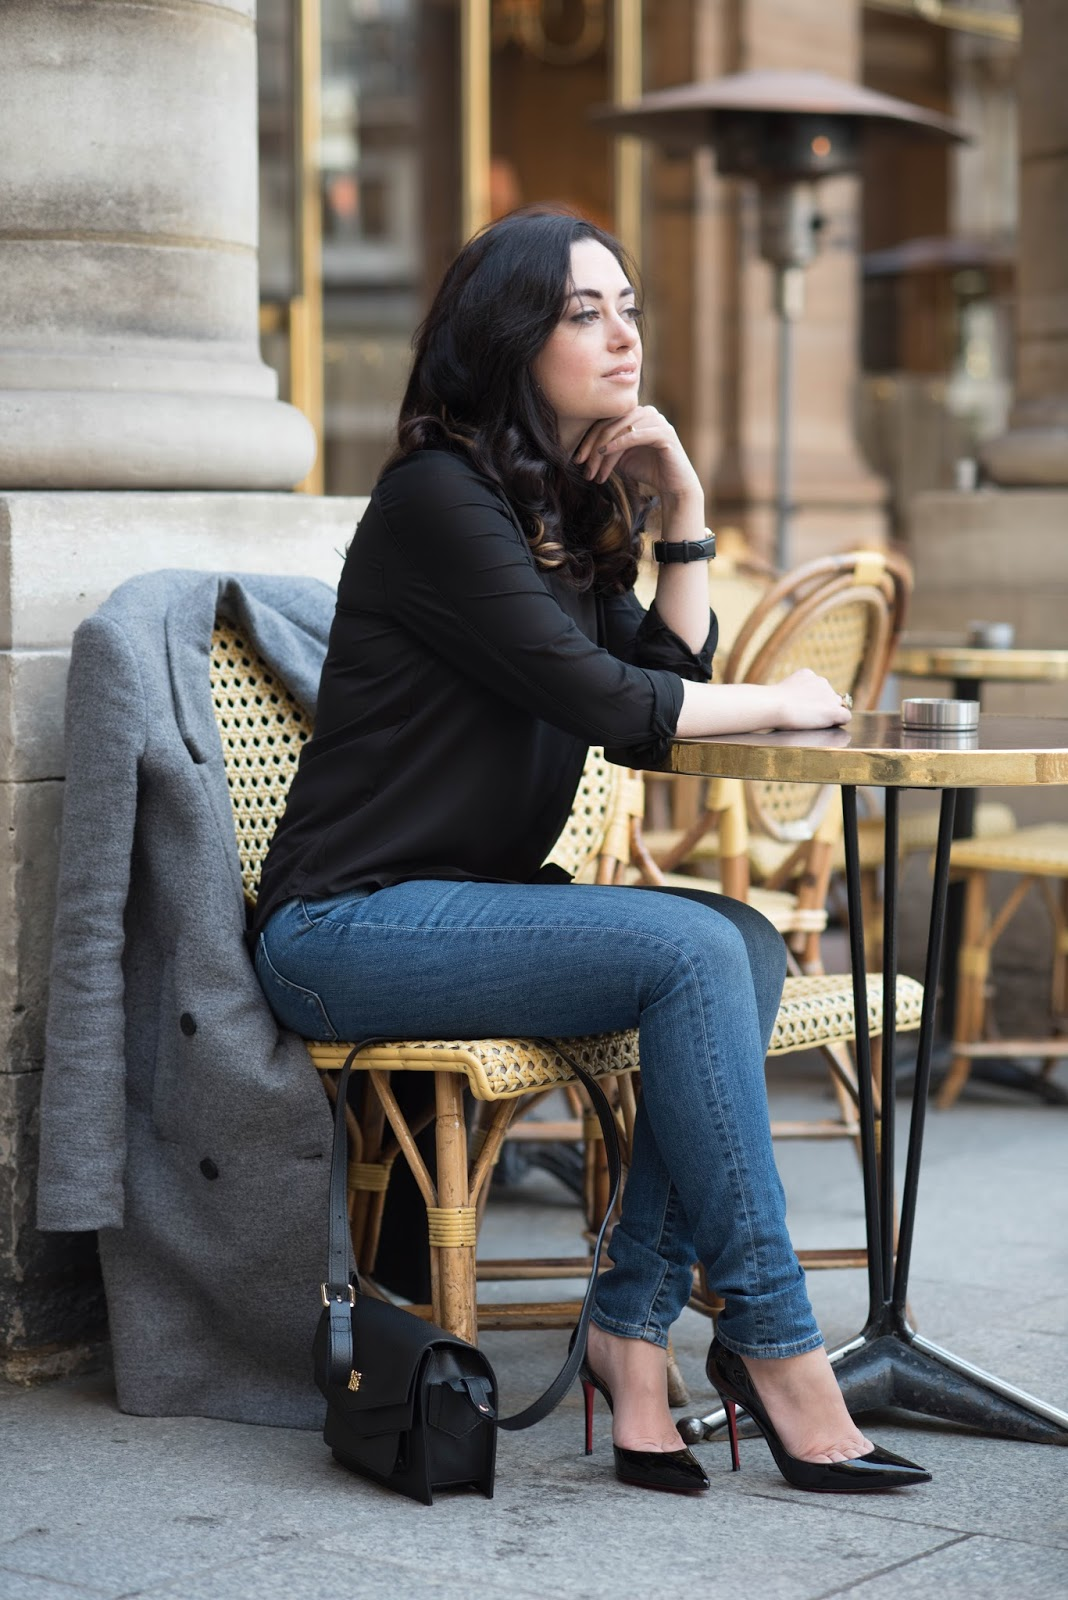 coco and vera, top paris fashion blog, outfit, ootd, casual, christian louboutin iriza, cc lifestyles maraca watch, le nemours, paris street style